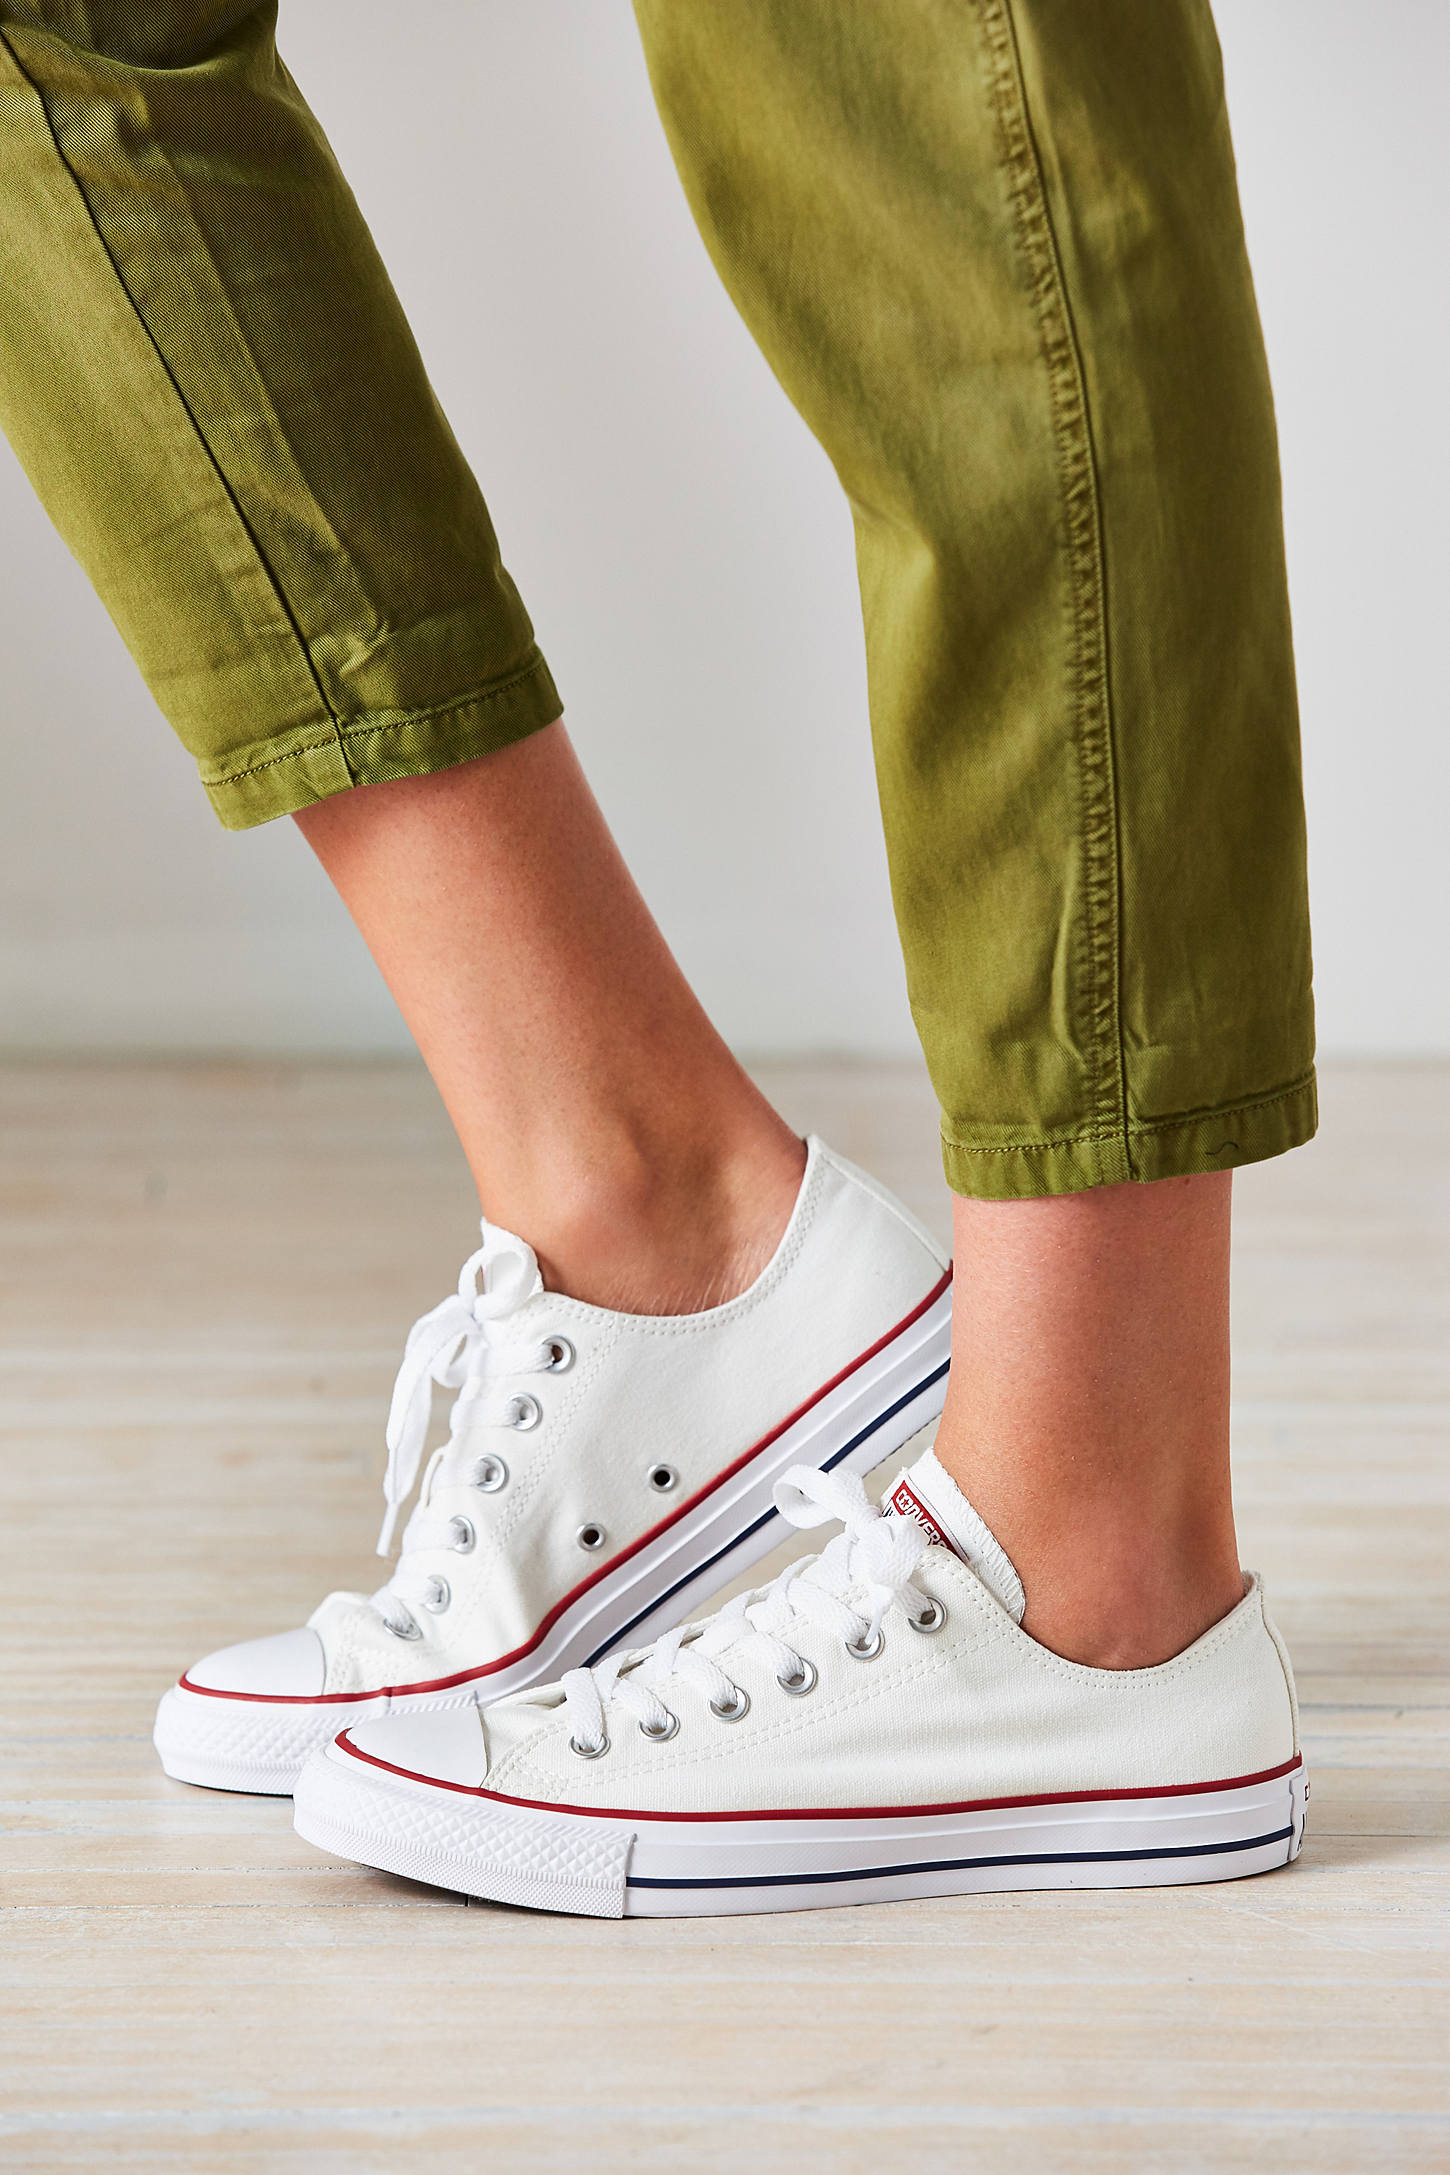 Slide View: 2: Converse Chuck Taylor All Star Low Top Sneaker